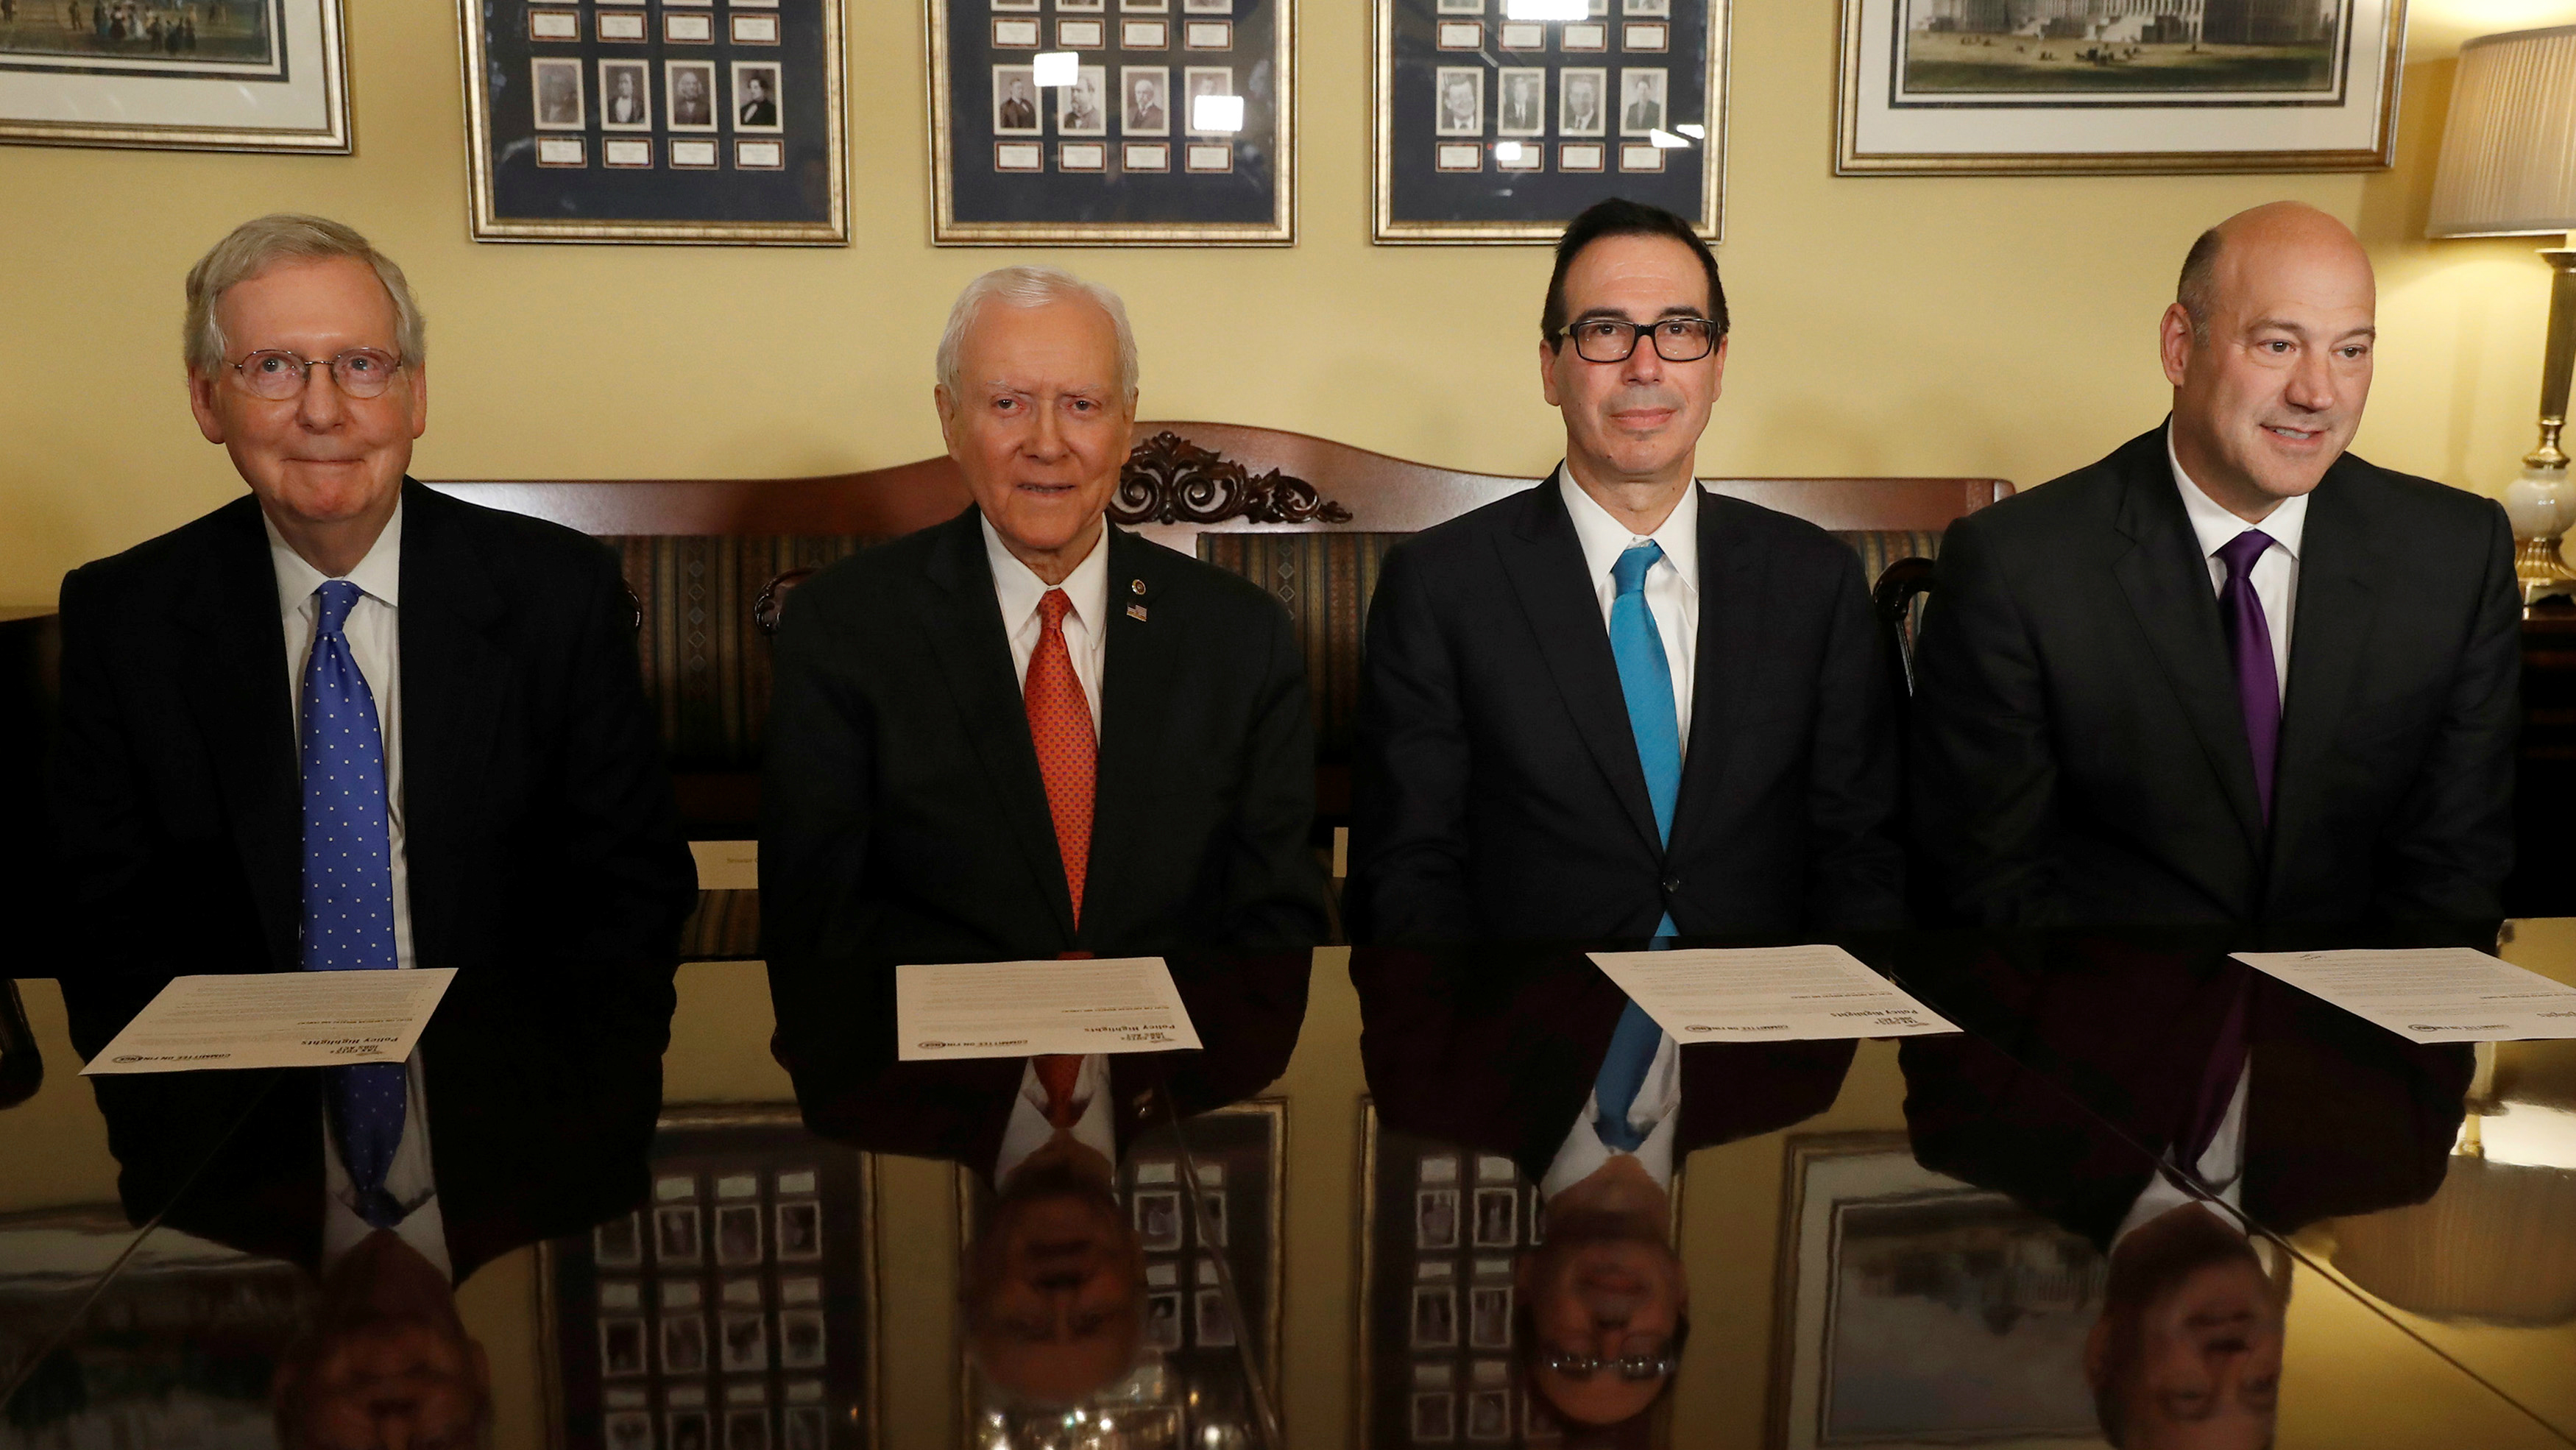 Senate Majority Leader Mitch McConnell, Sen. Orrin Hatch, Treasury Secretary Steve Mnuchin and Director of the National Economic Council Gary Cohn introduce the Republican tax reform plan at the U.S. Capitol in Washington, U.S., November 9, 2017.